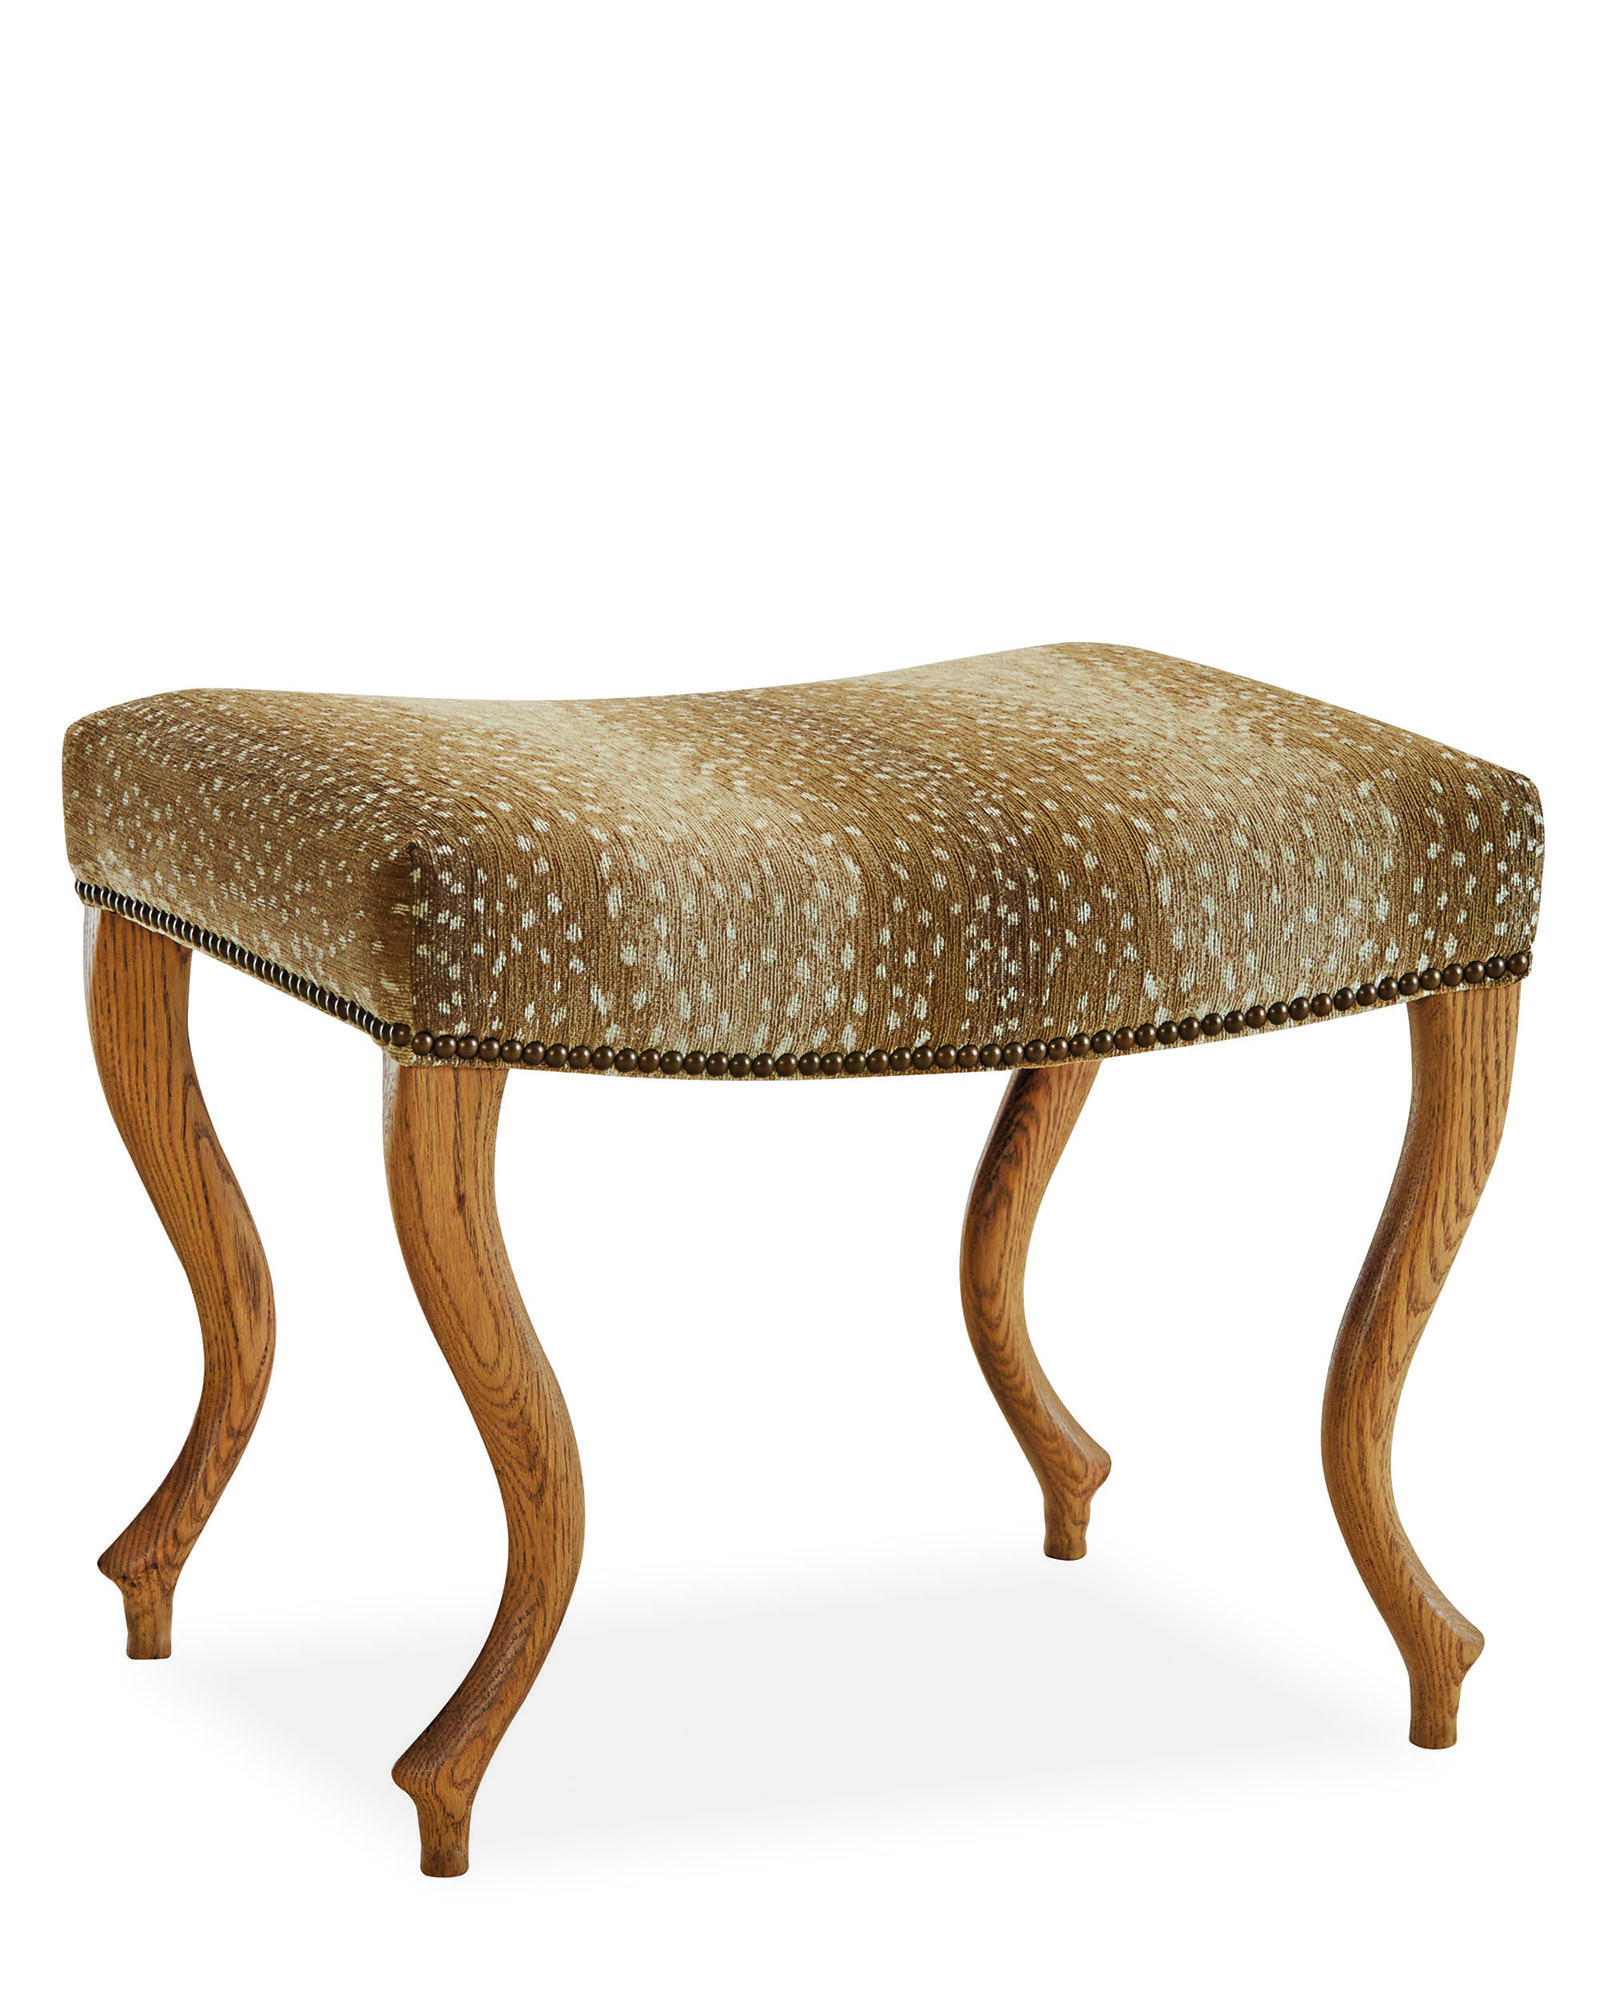 The Graham Ottoman with antelope hide upholstered seat